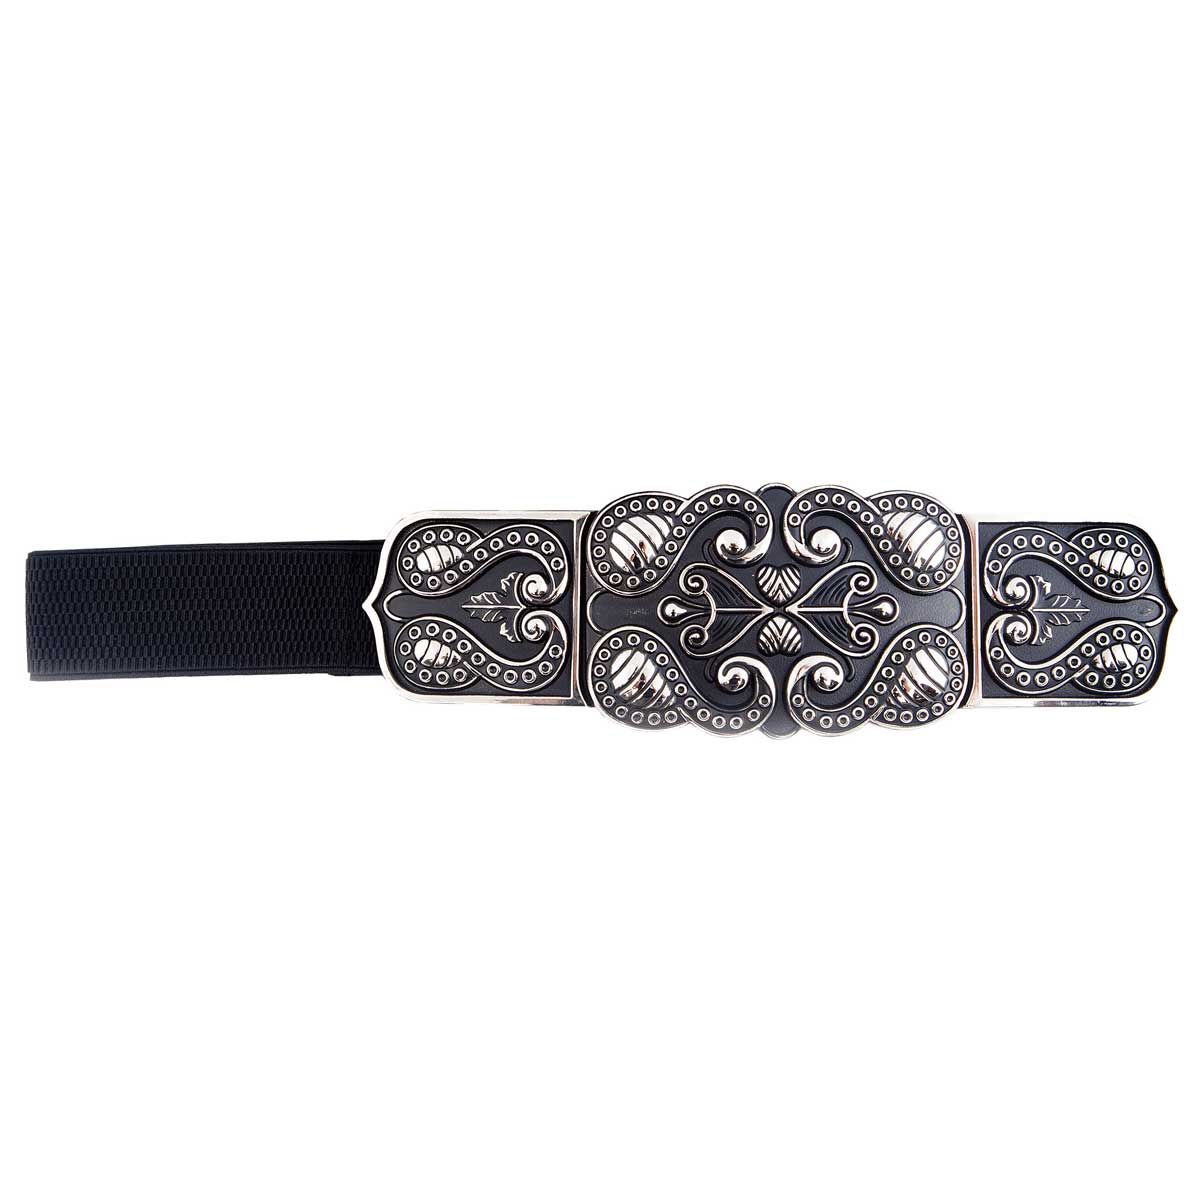 BLACK STRETCH BELT WITH ANTIQUE GOLDTONE SCROLL BUCKLE